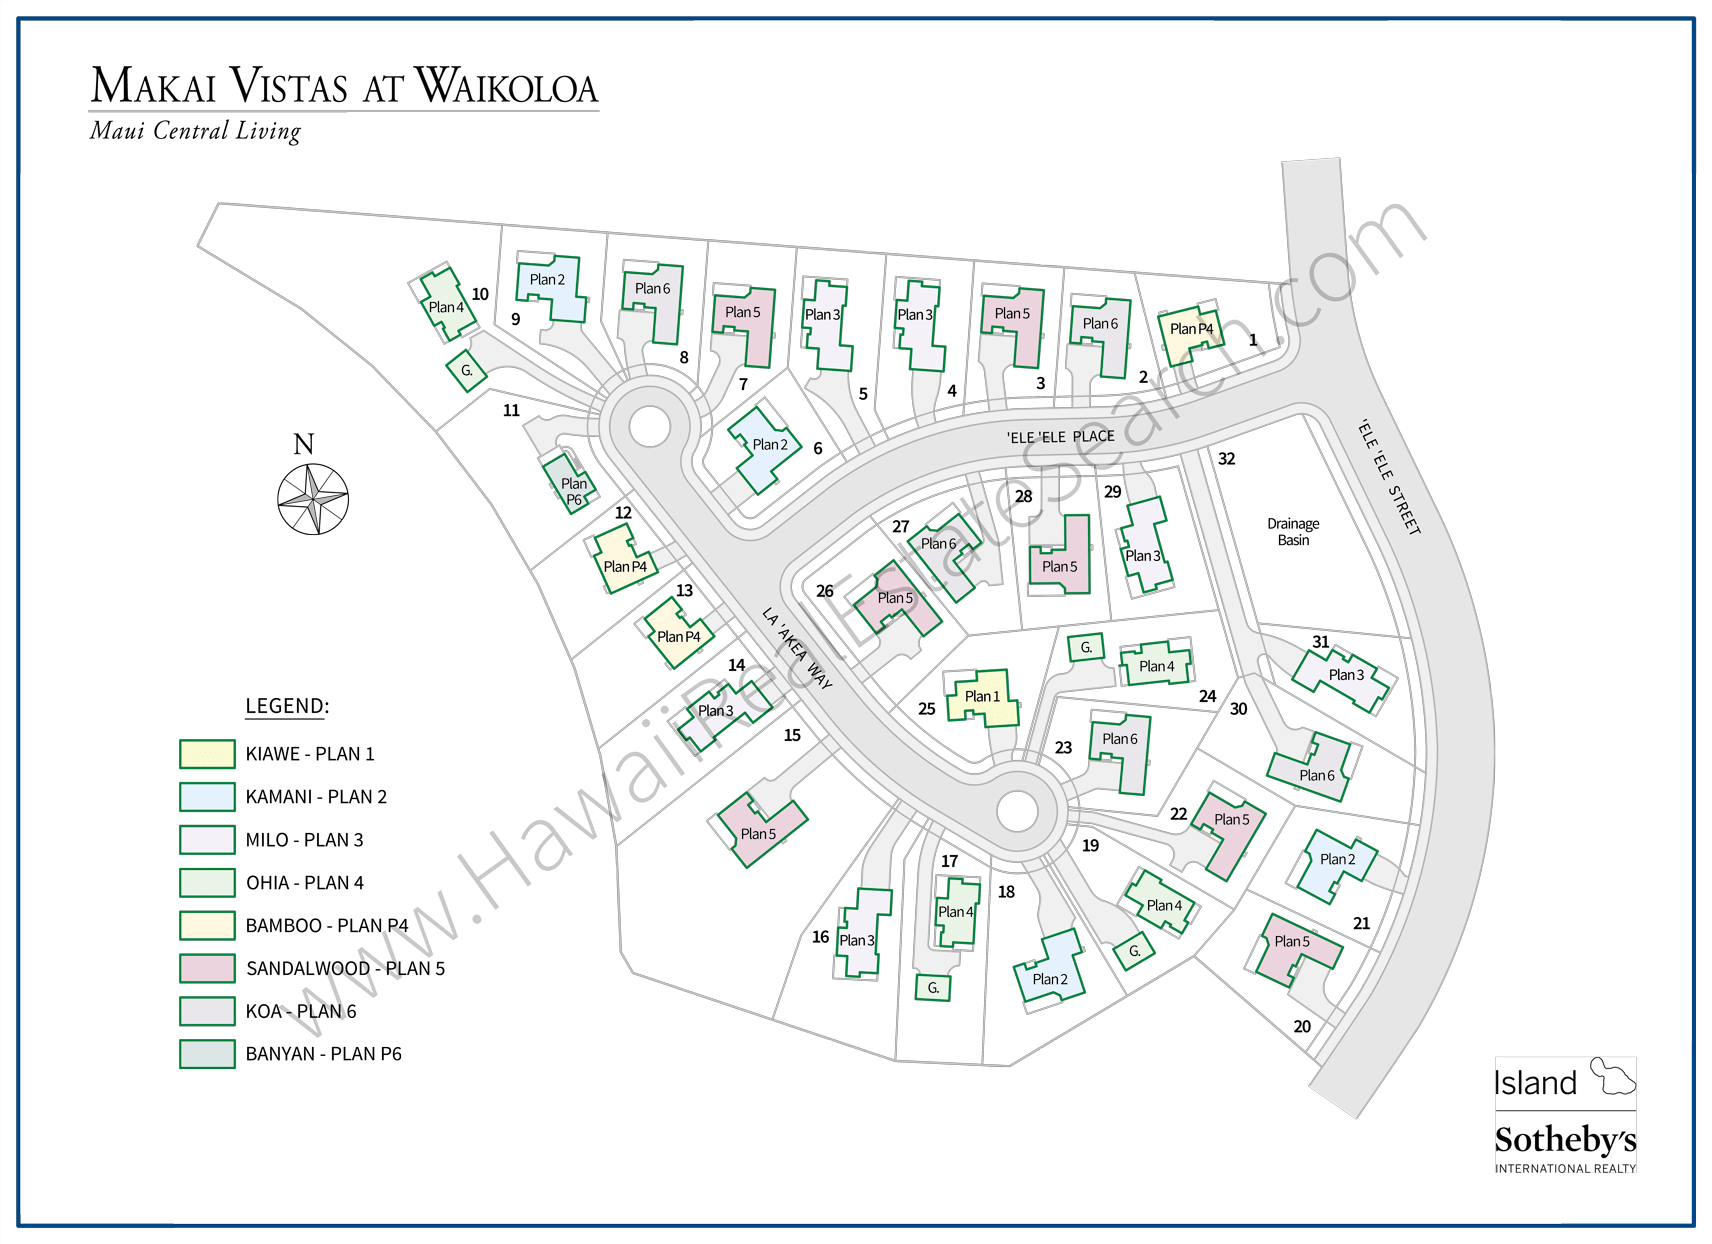 Makai Vistas at Waikoloa Map